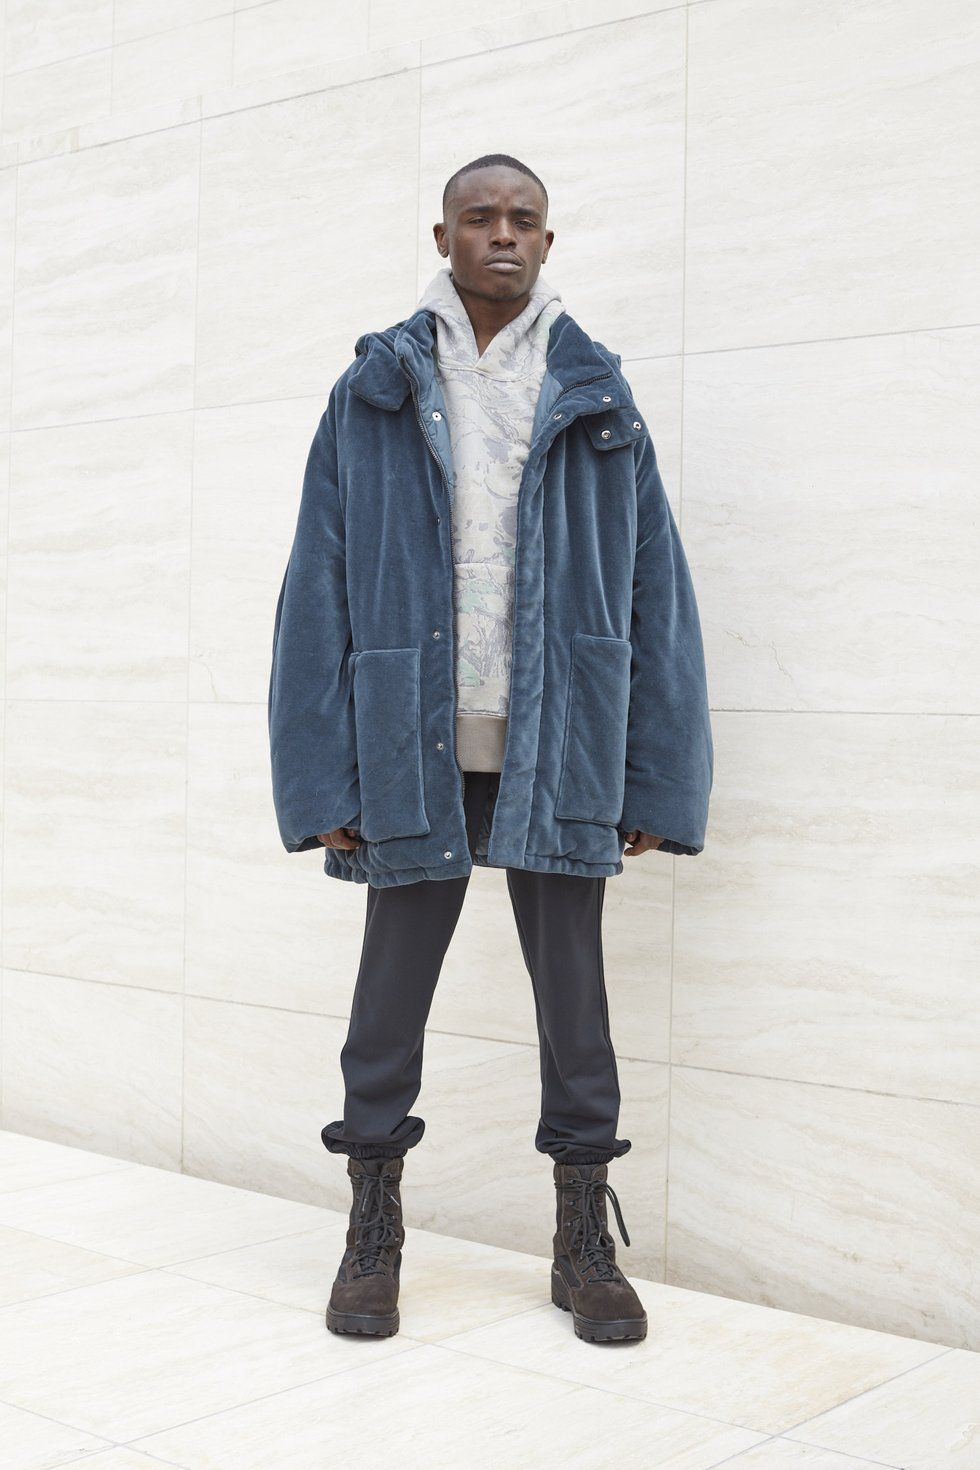 Velour Puffer Jacket Bat Kanye West Outfits Yeezy Fashion Womens Jackets Casual [ 1470 x 980 Pixel ]